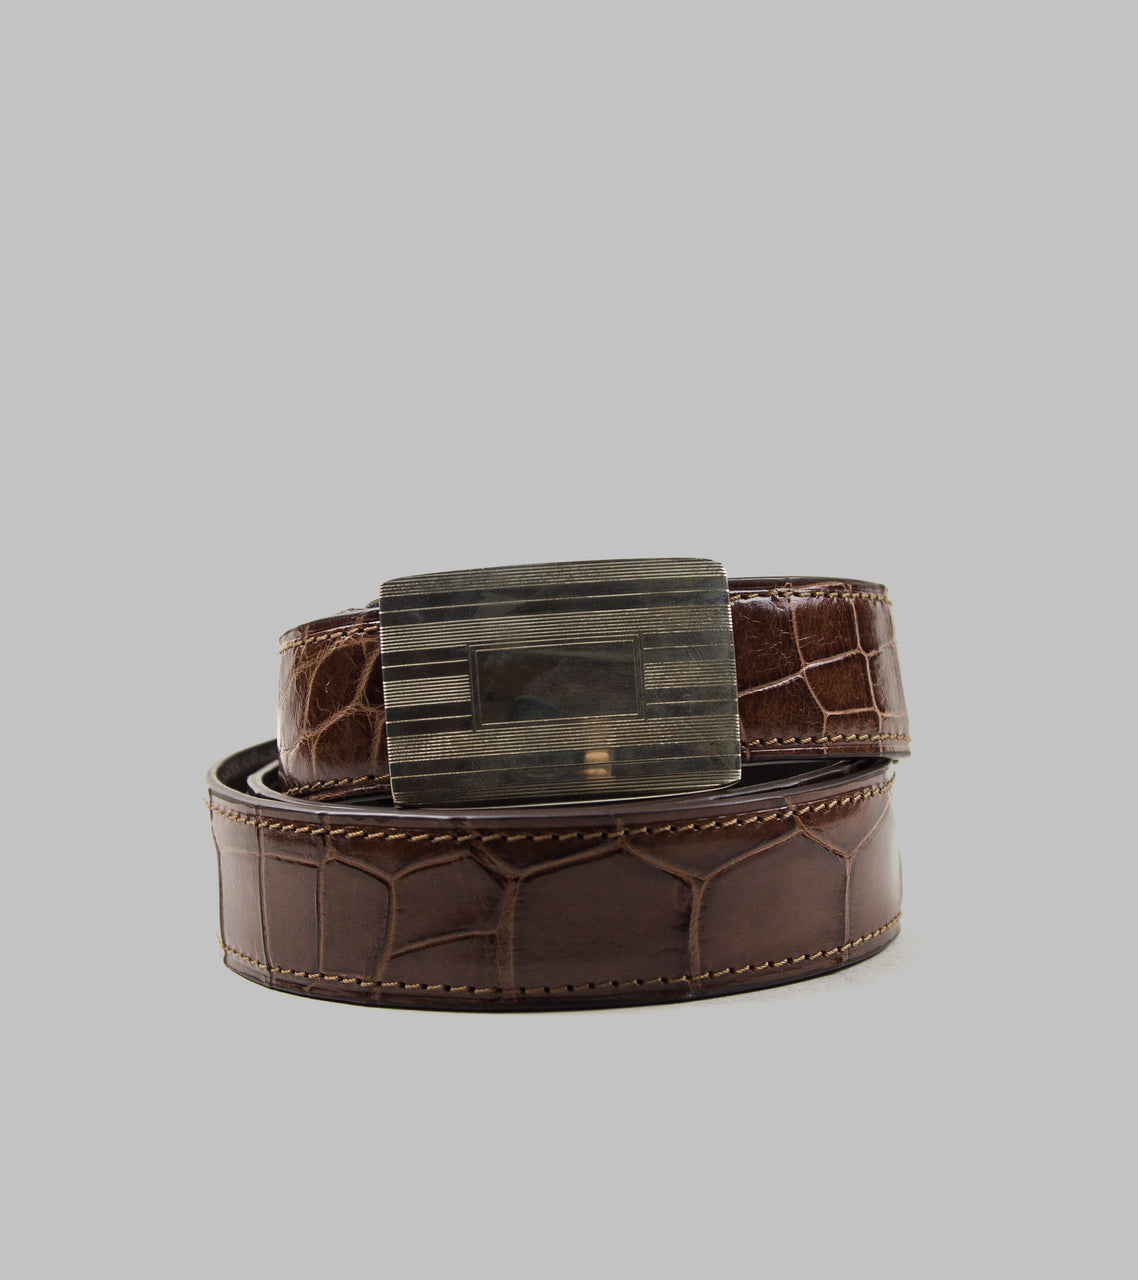 Bryceland's One-Piece Alligator Belt Brown